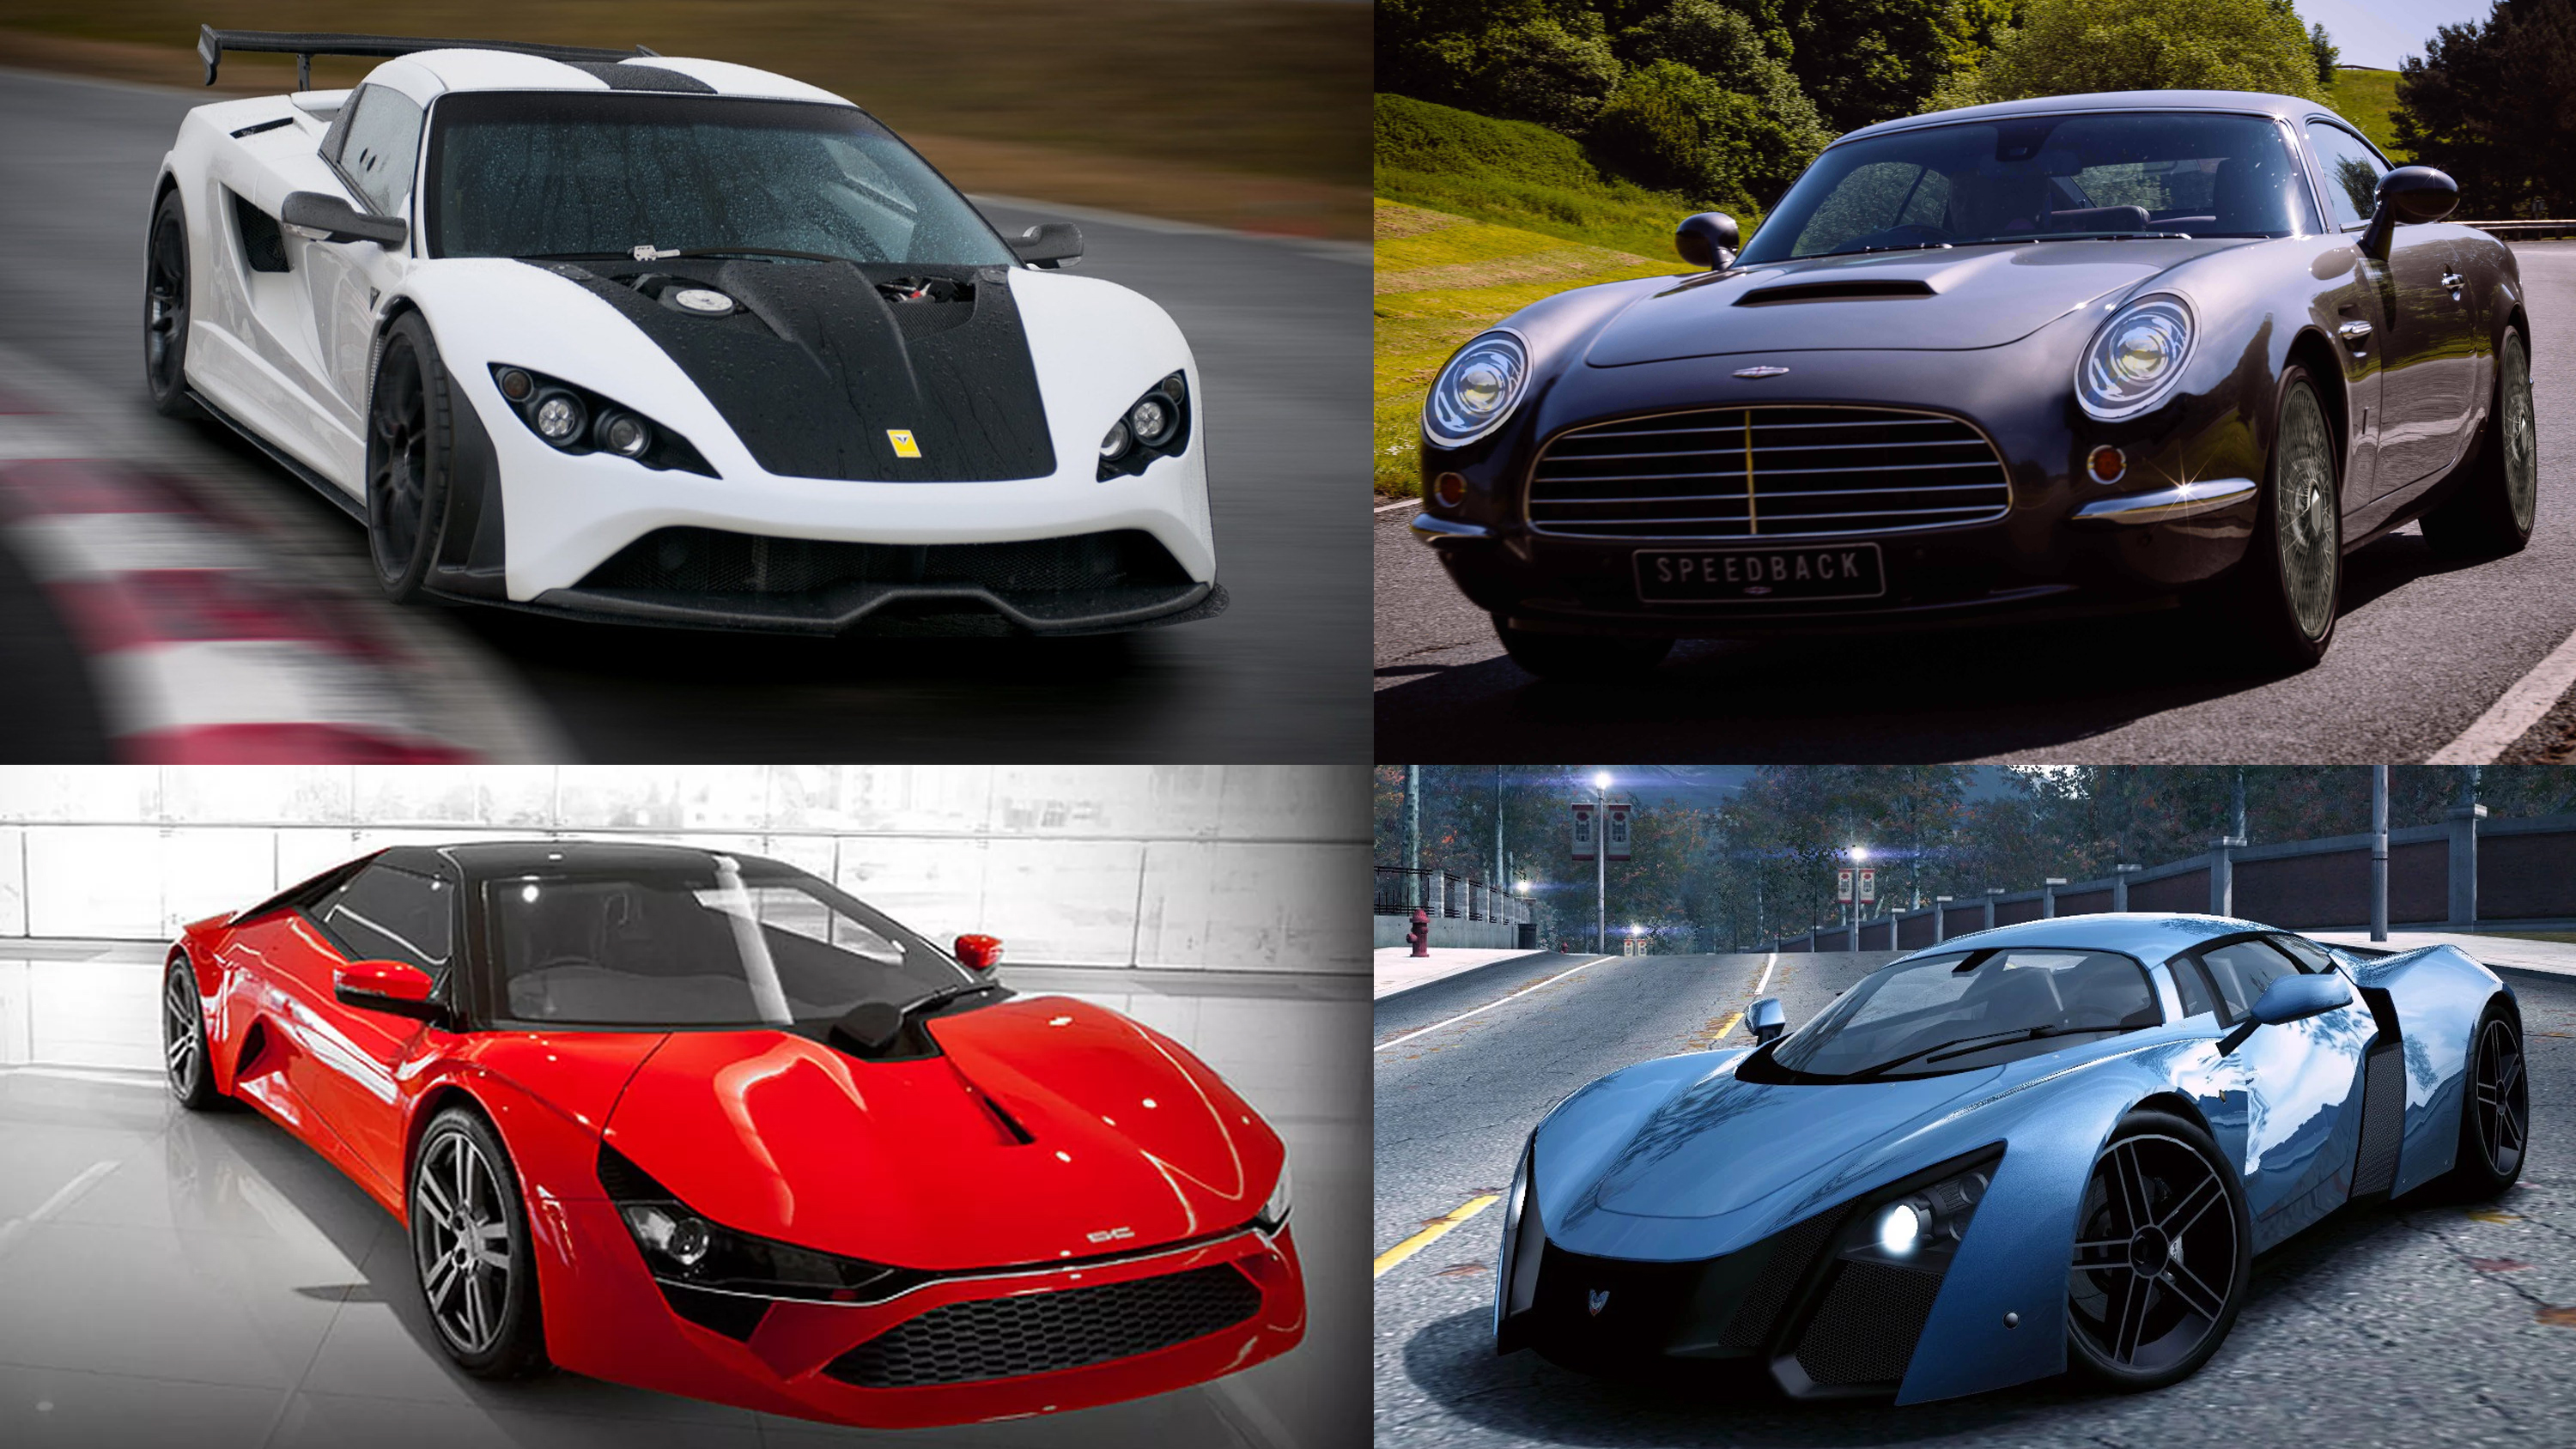 5 Modern Sports Cars You've Probably Never Heard Of - Top ...